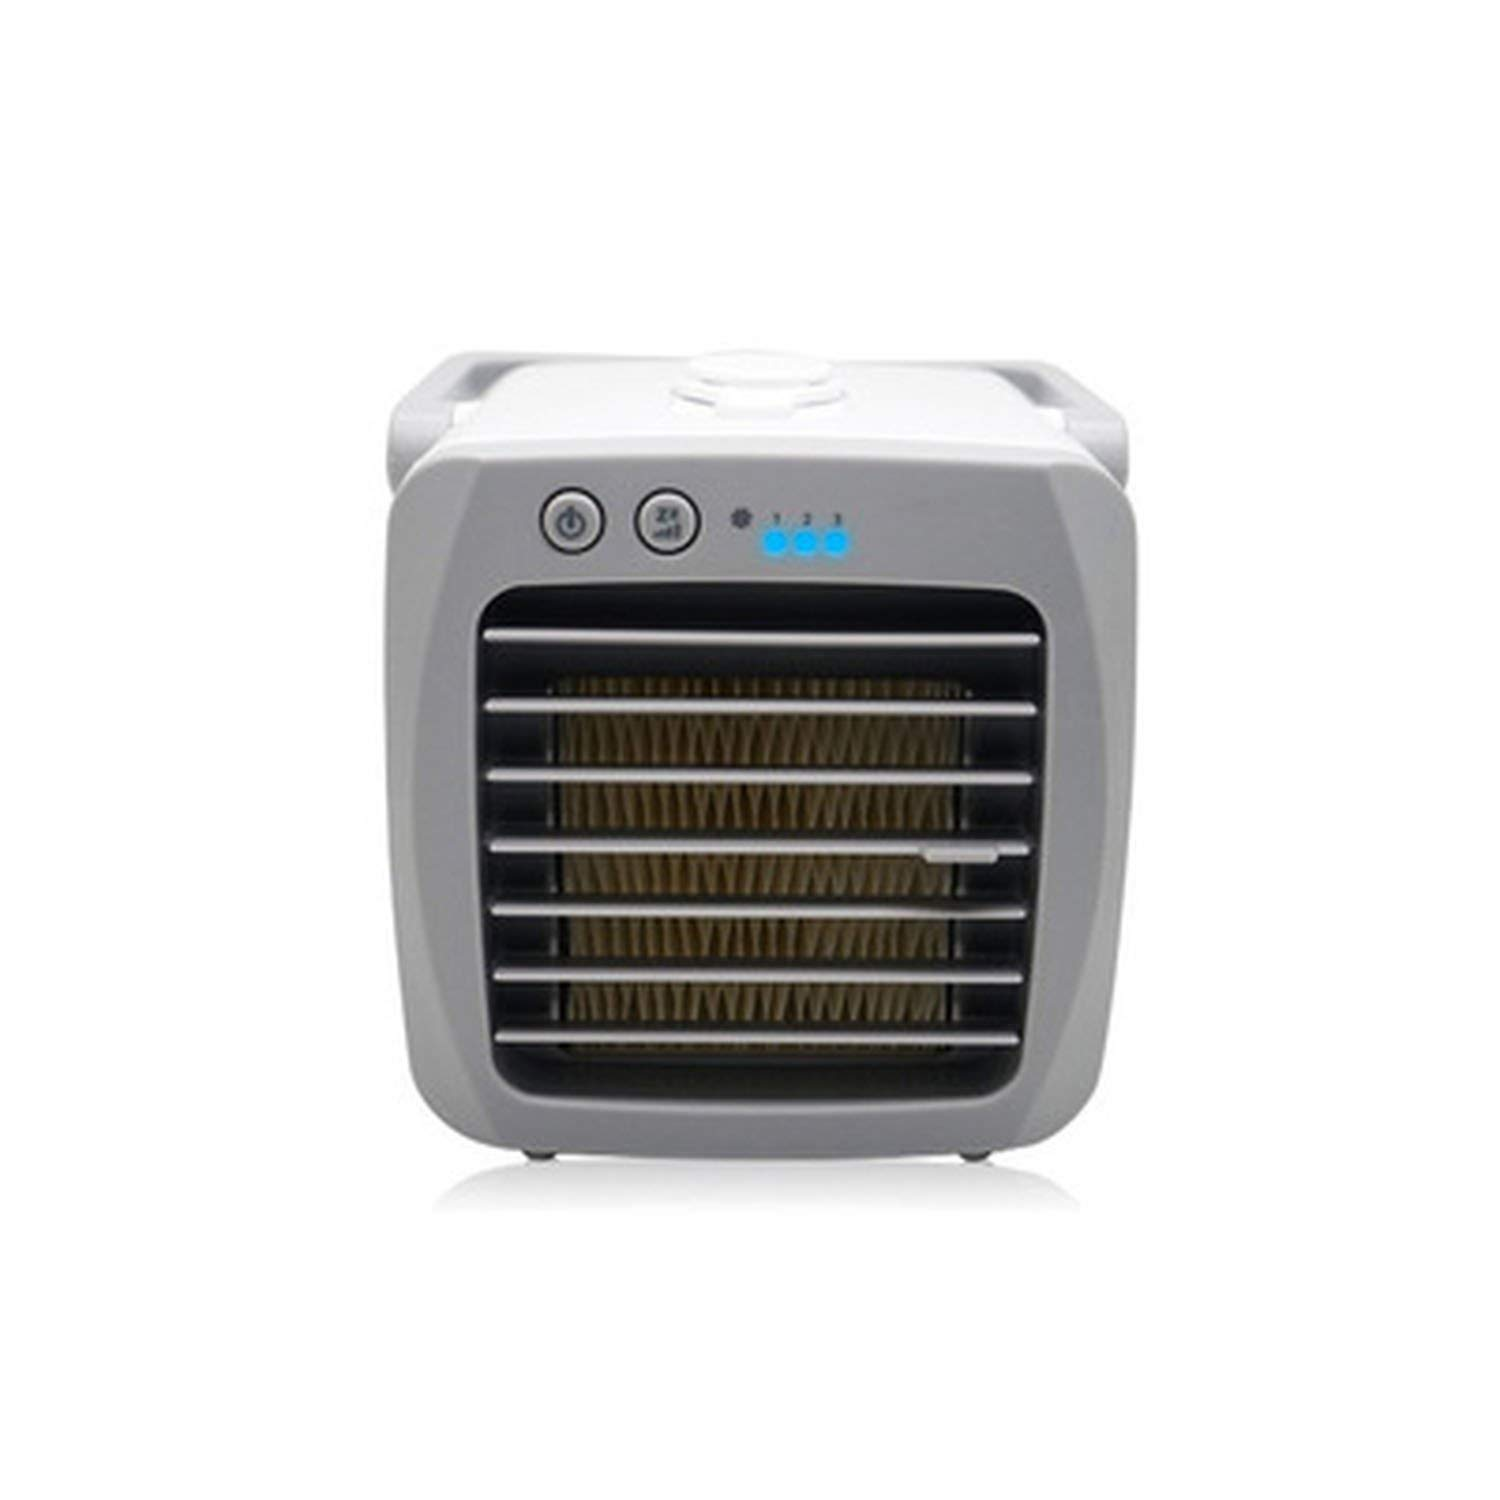 USB Air Cooler Fan Artic Air Evapolar USB Fan Portable Desk Fan Mini Conditioner Device Cool Soothing Wind Home/Office,Grey